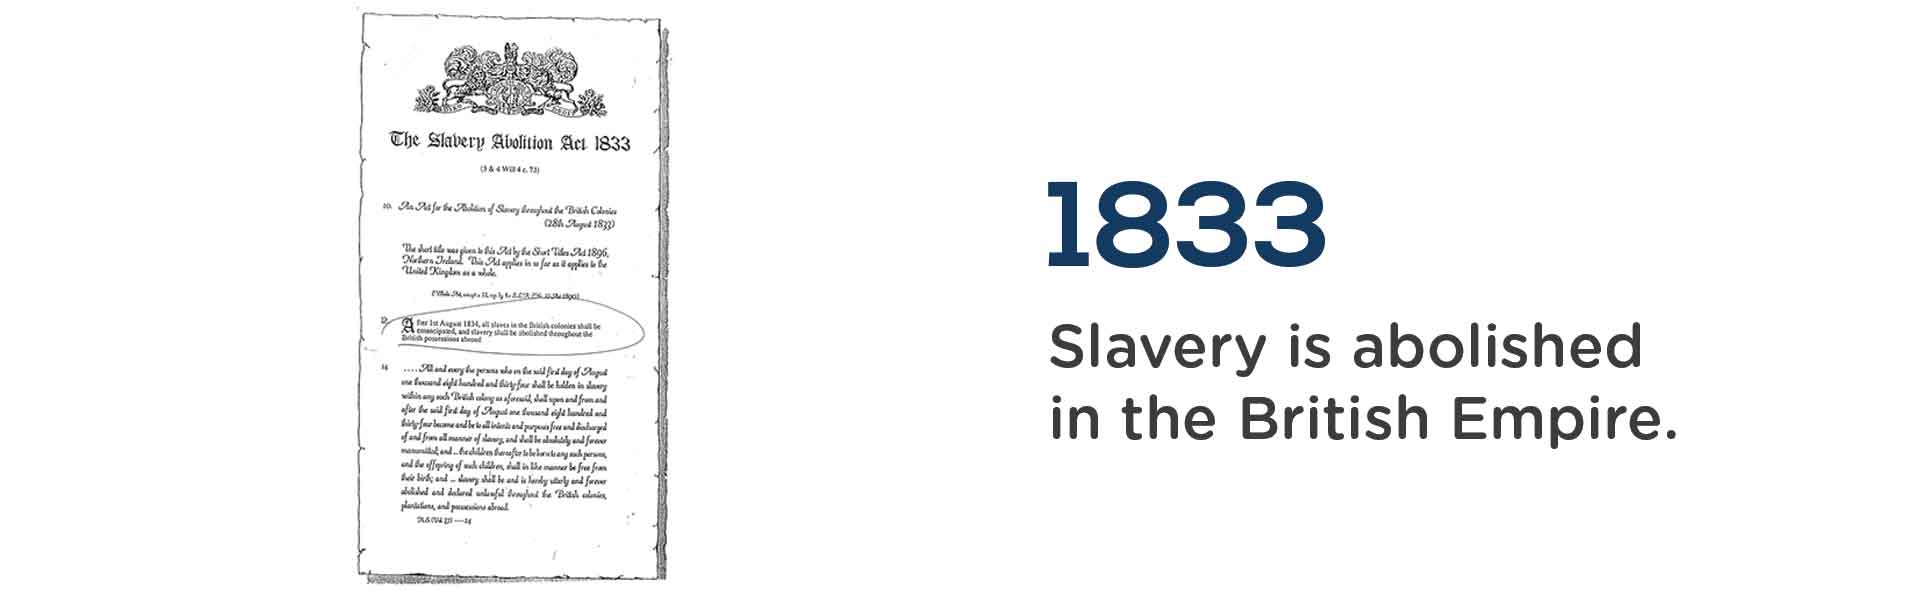 Slavery was abolished in the UK in 1833. Wrigley Claydon Solicitors, Trusted for 200 years